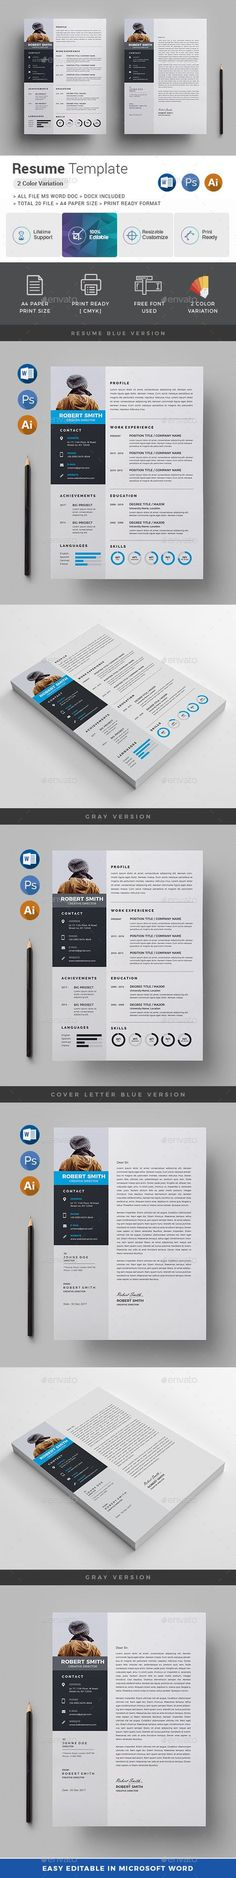 Resume template + FREE Cover Letter by Resume Templates on - resume customization reasons